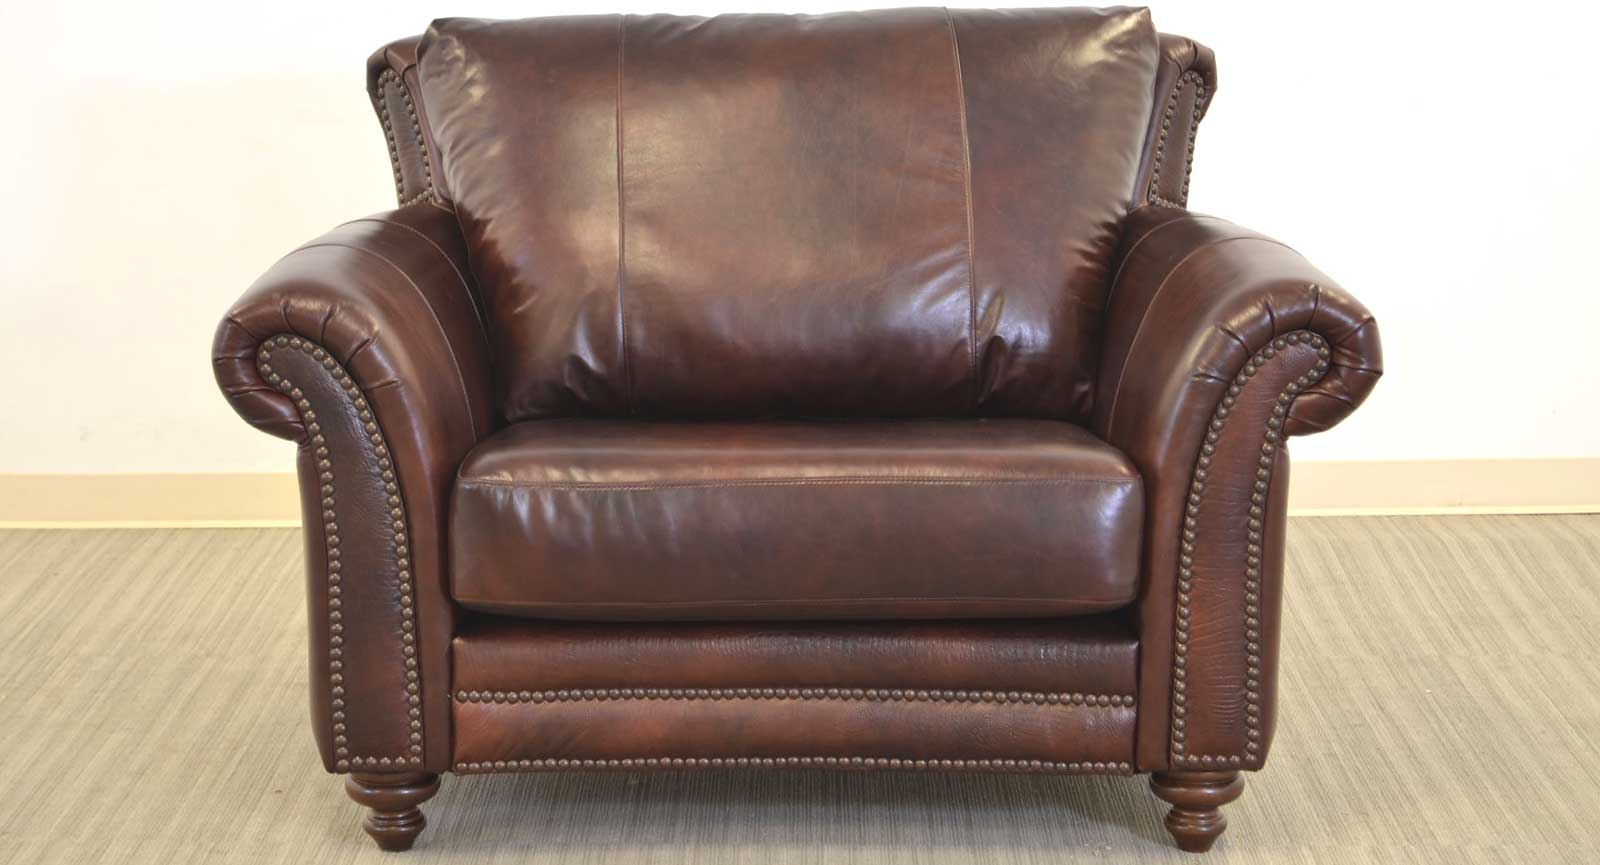 Highlander Oversized Chair